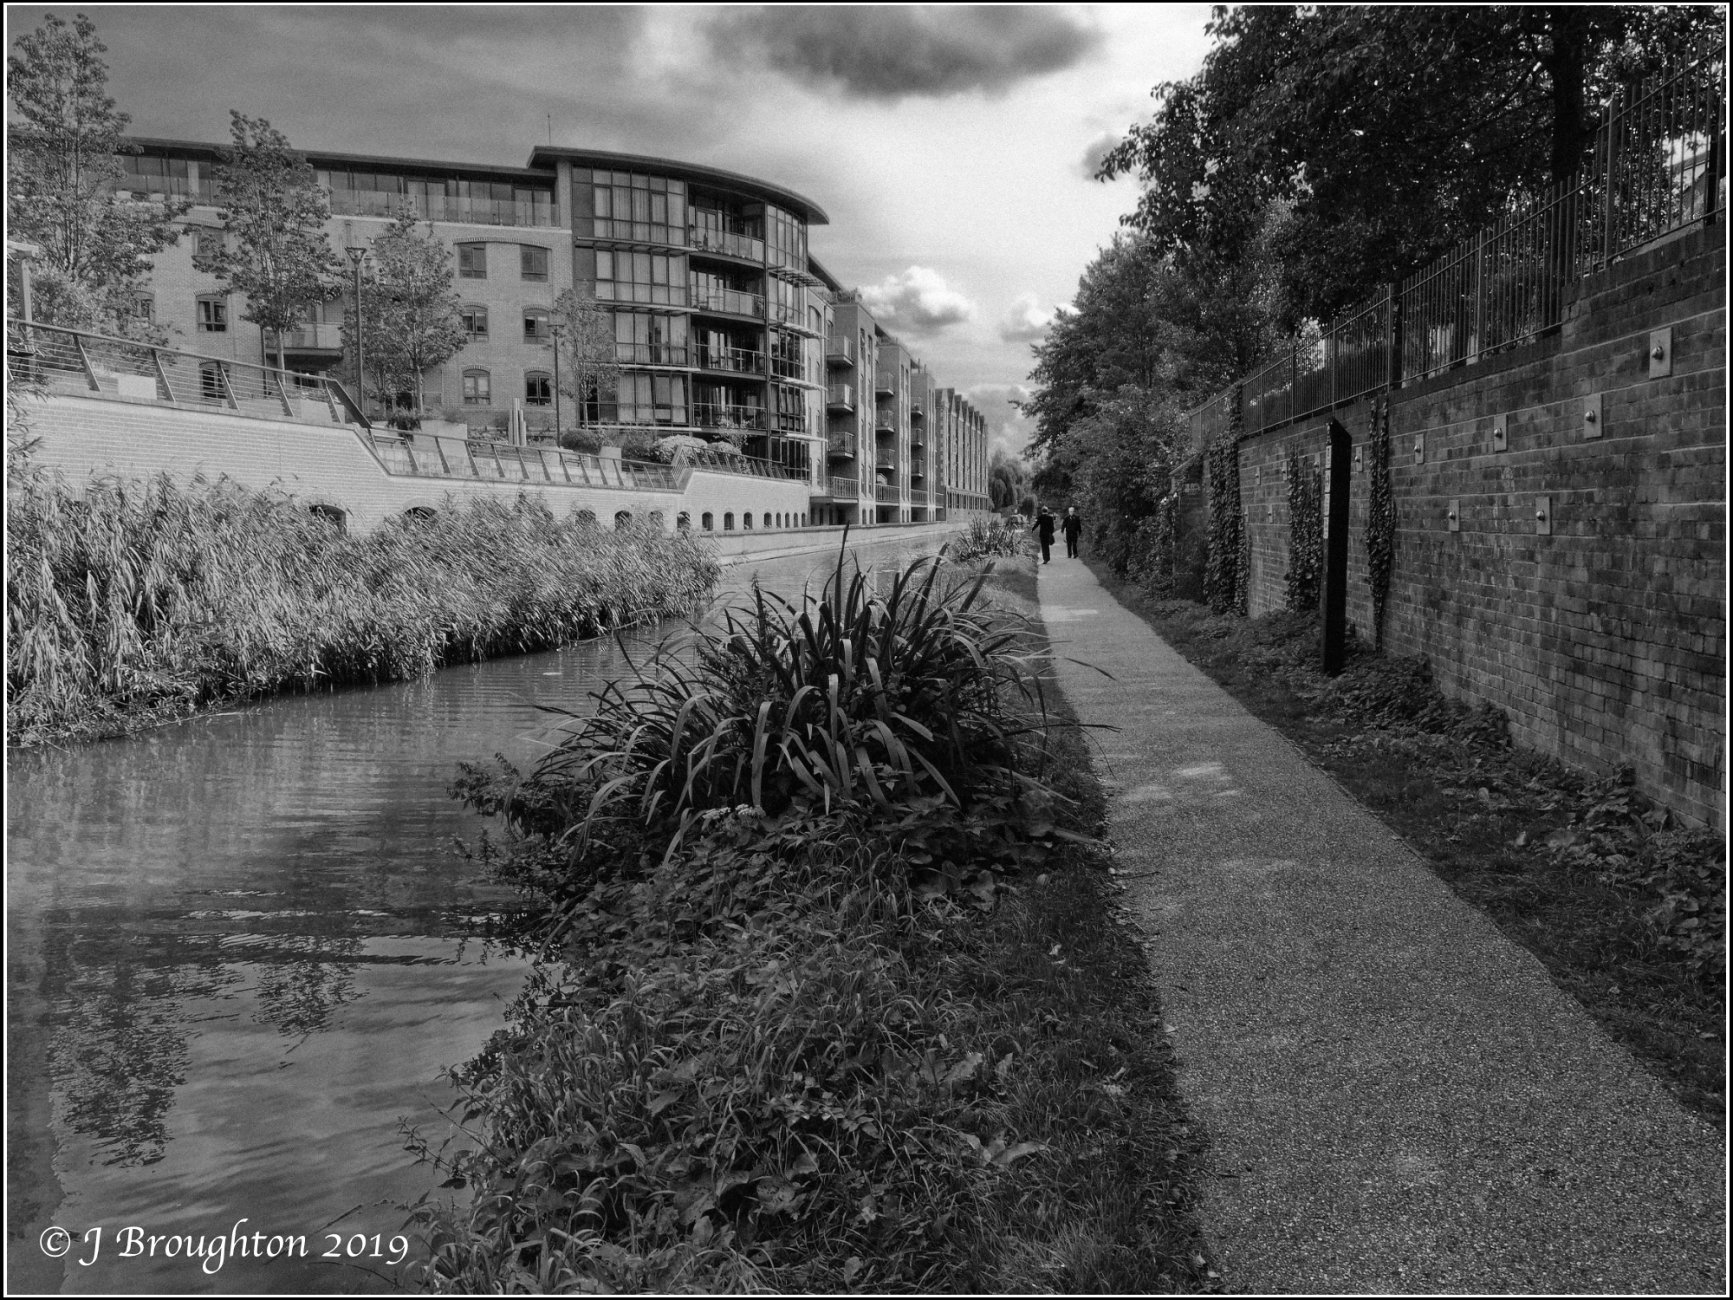 Oxford Canal in monochrome.